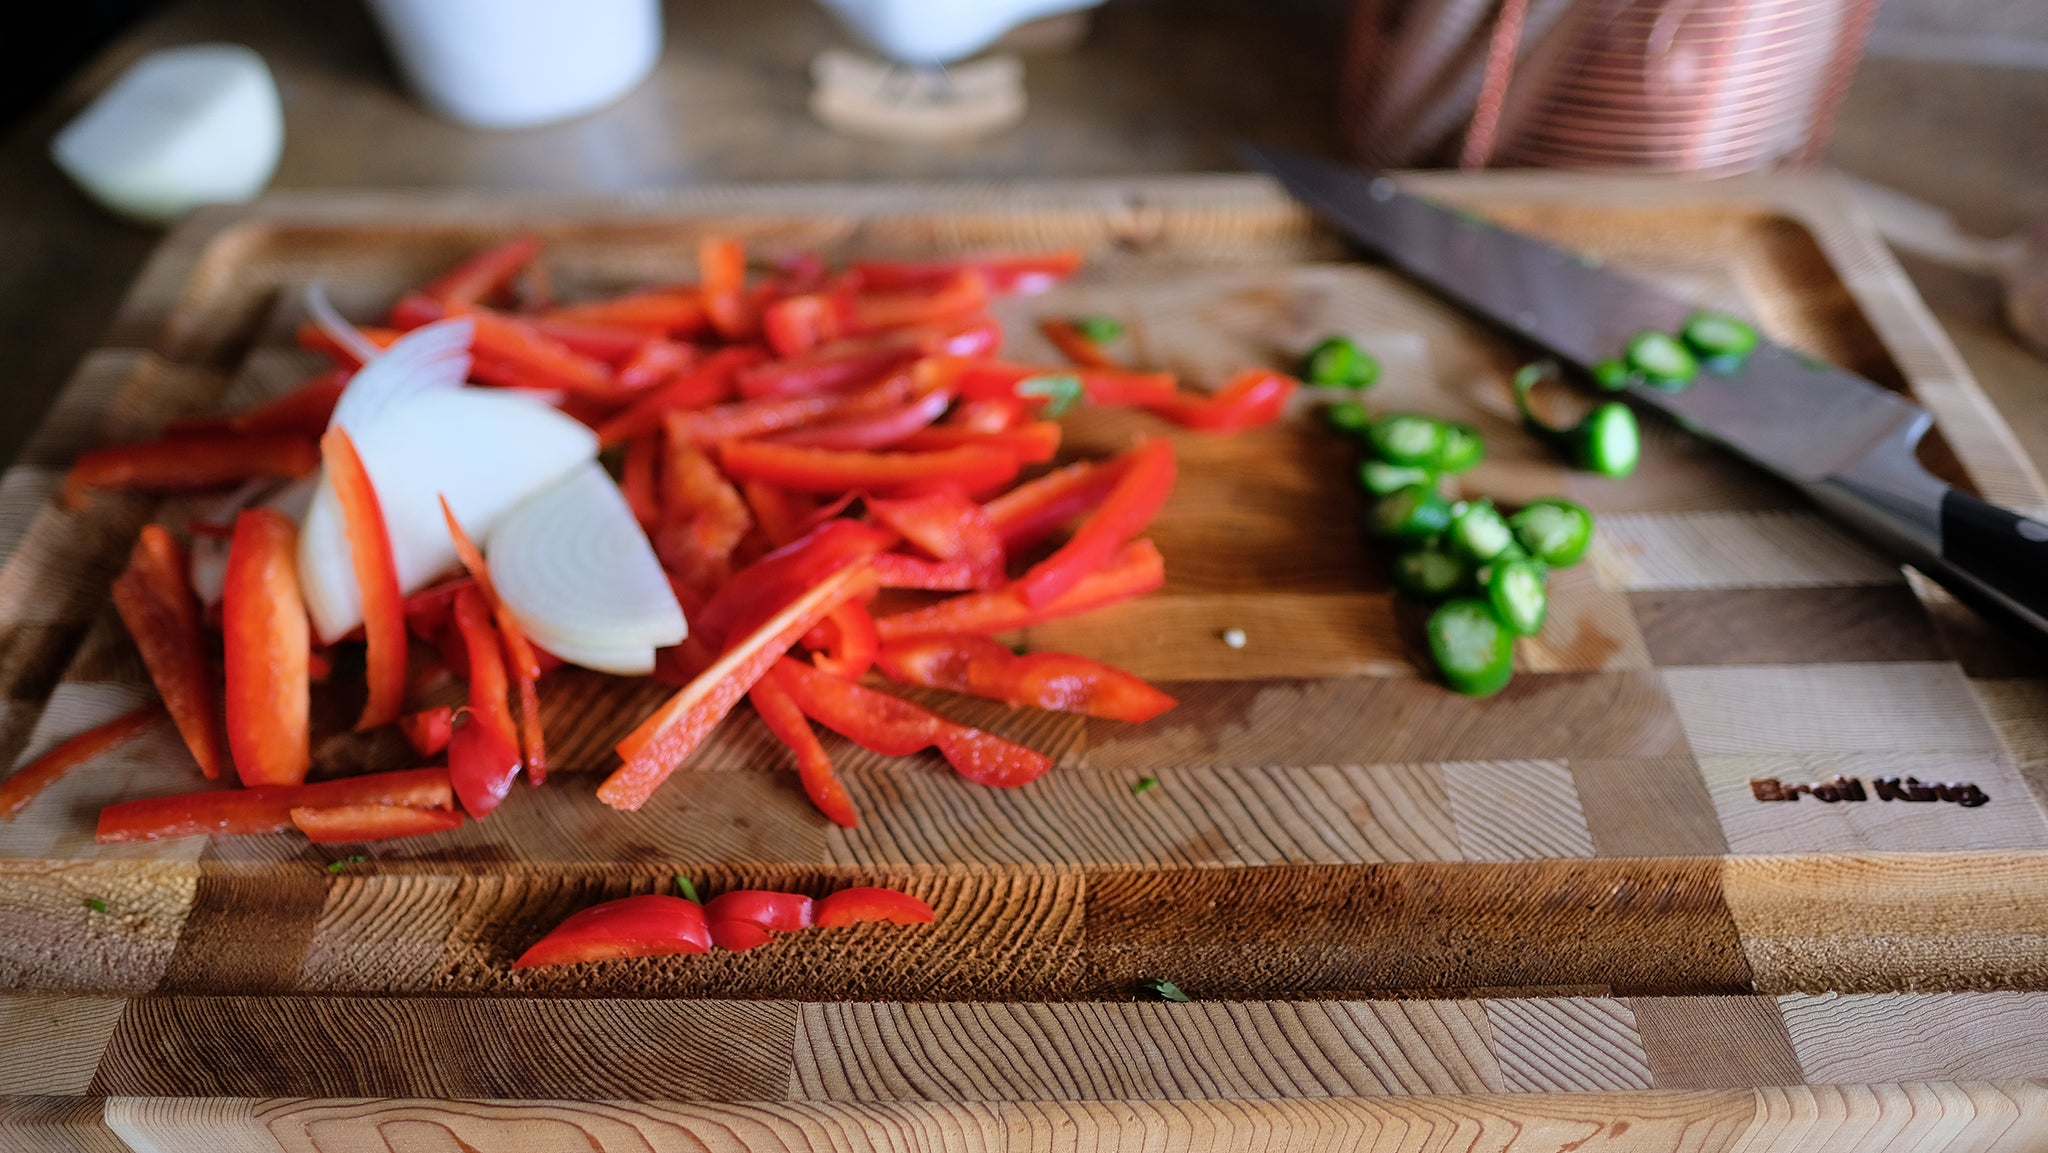 Onion, bell peppers and chili pepper, sliced on a cutting board